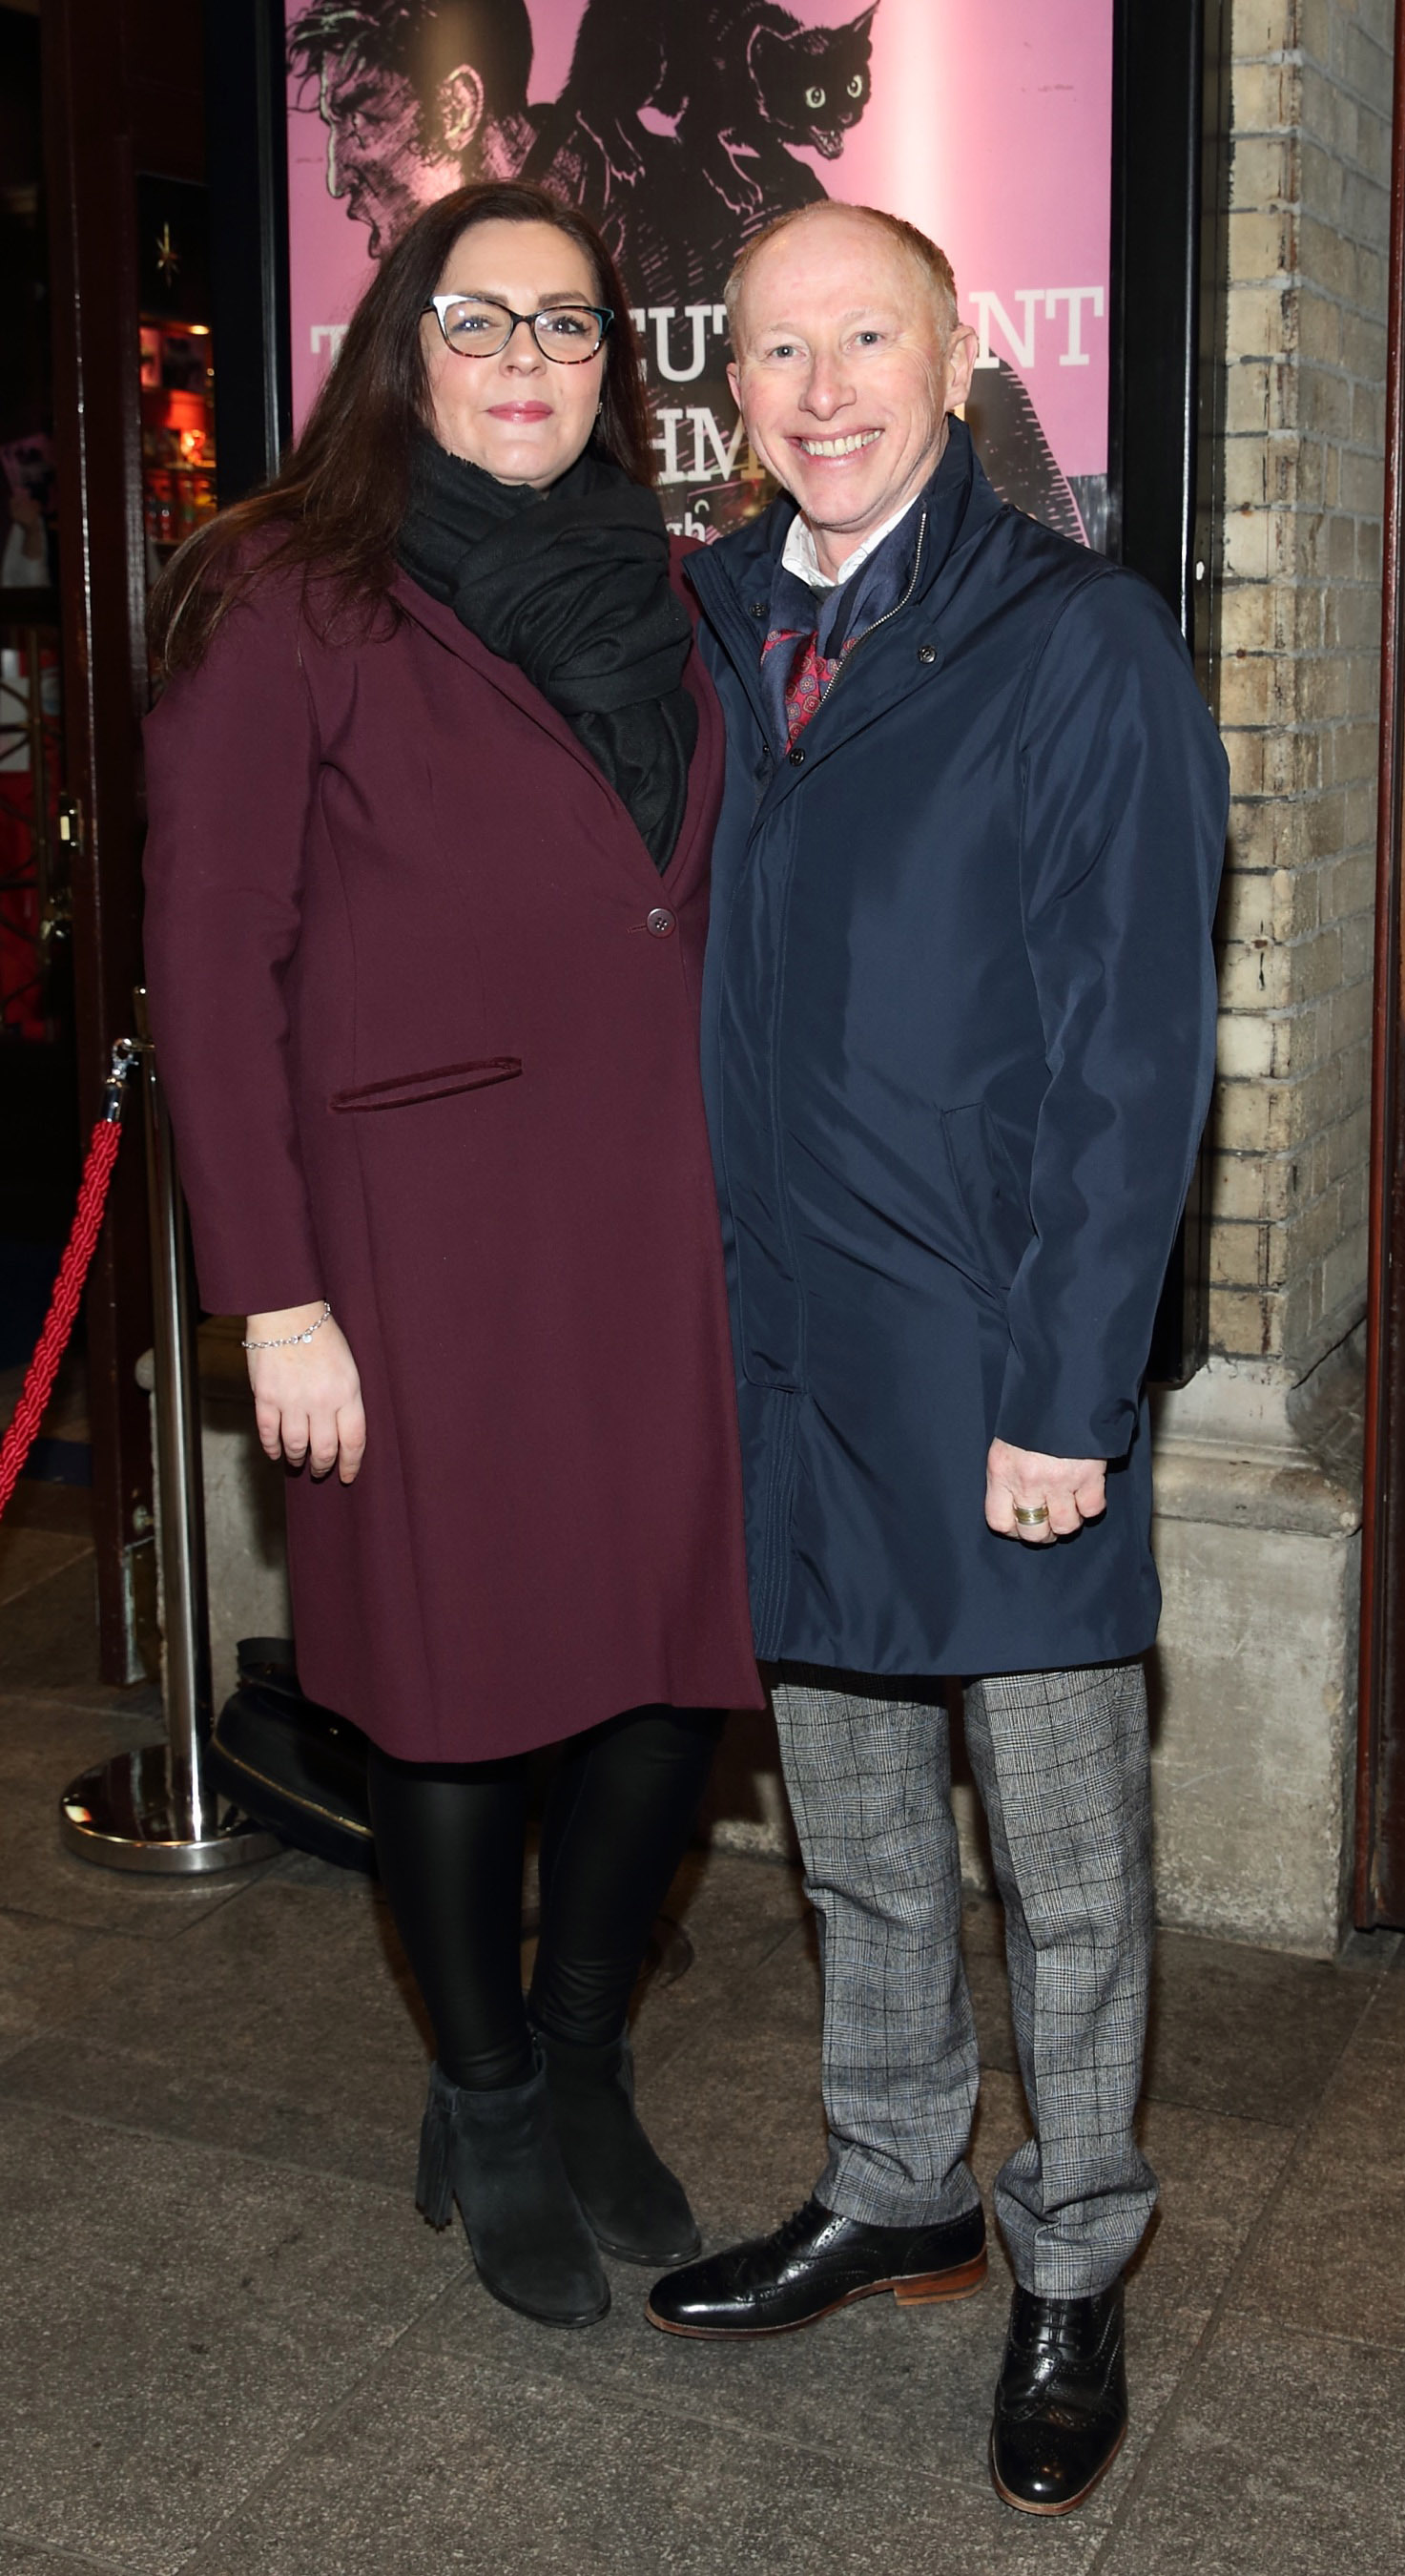 Gemma Cullen and Joe Conlan pictured at the opening of the Gaiety Theatre's major new production of Martin McDonagh's 'The Lieutenant of Inishmore', which will run at the Gaiety Theatre until 14th March.